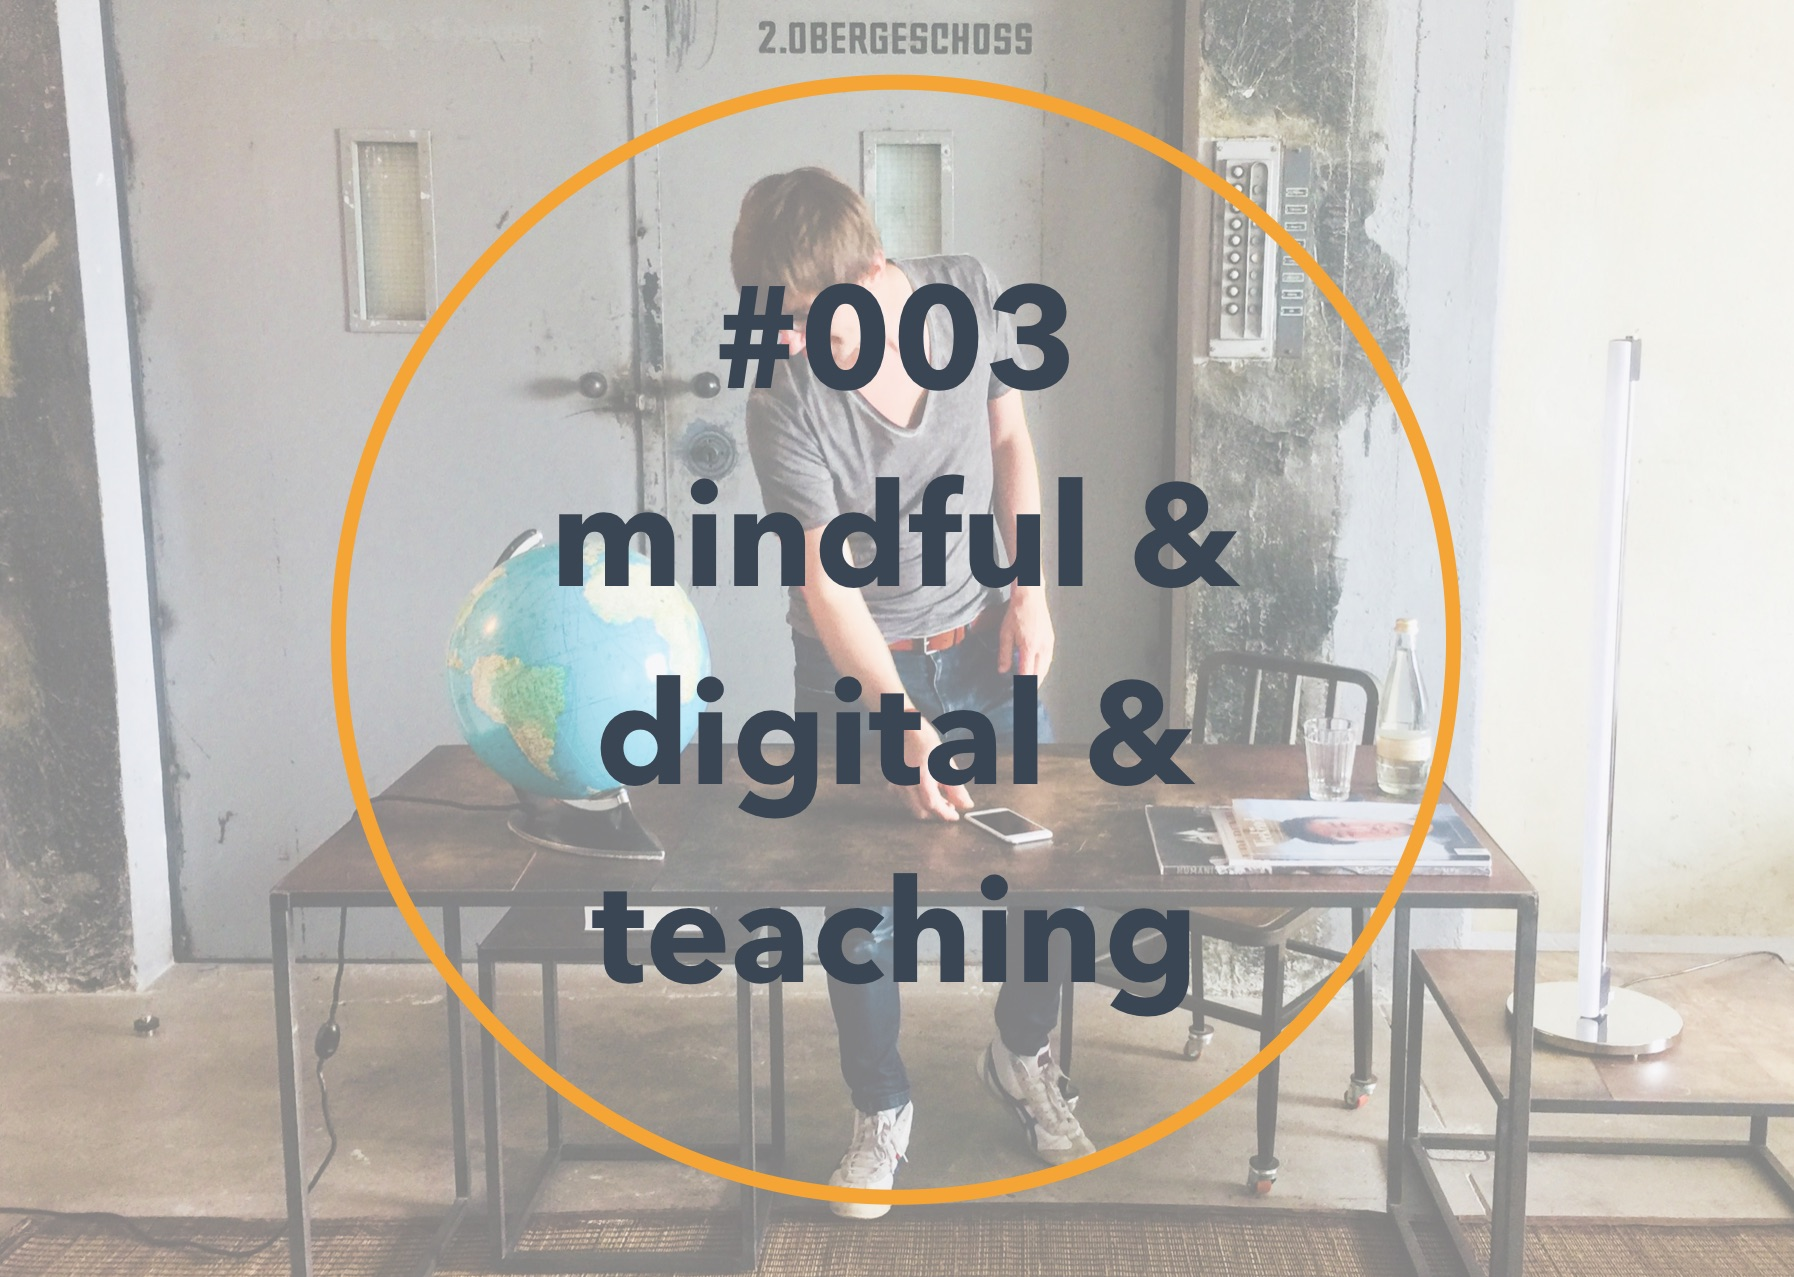 003 mindful and digital and teaching